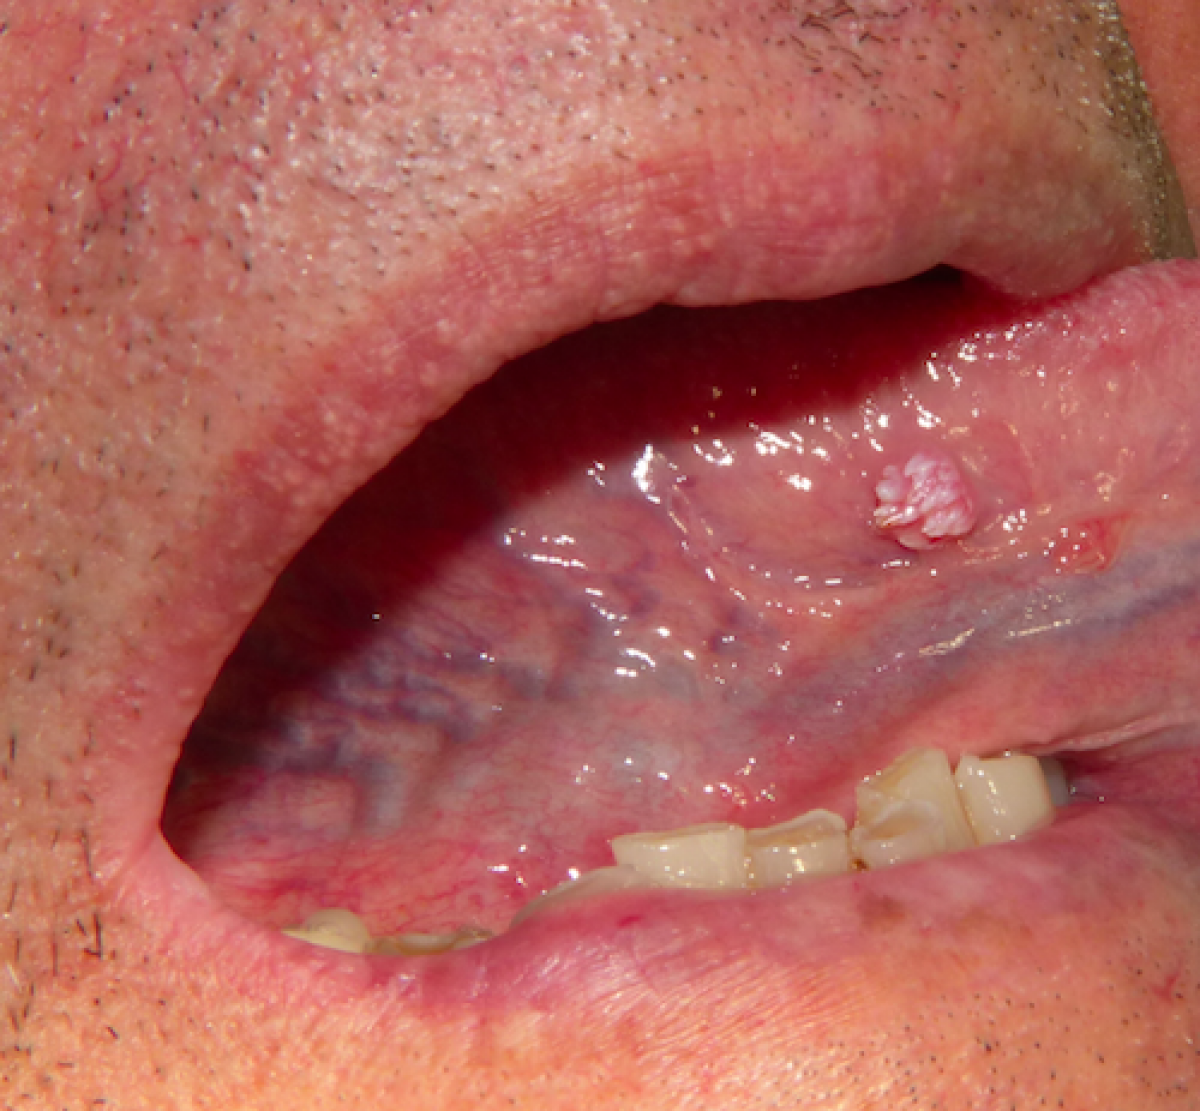 papillary lesion under tongue